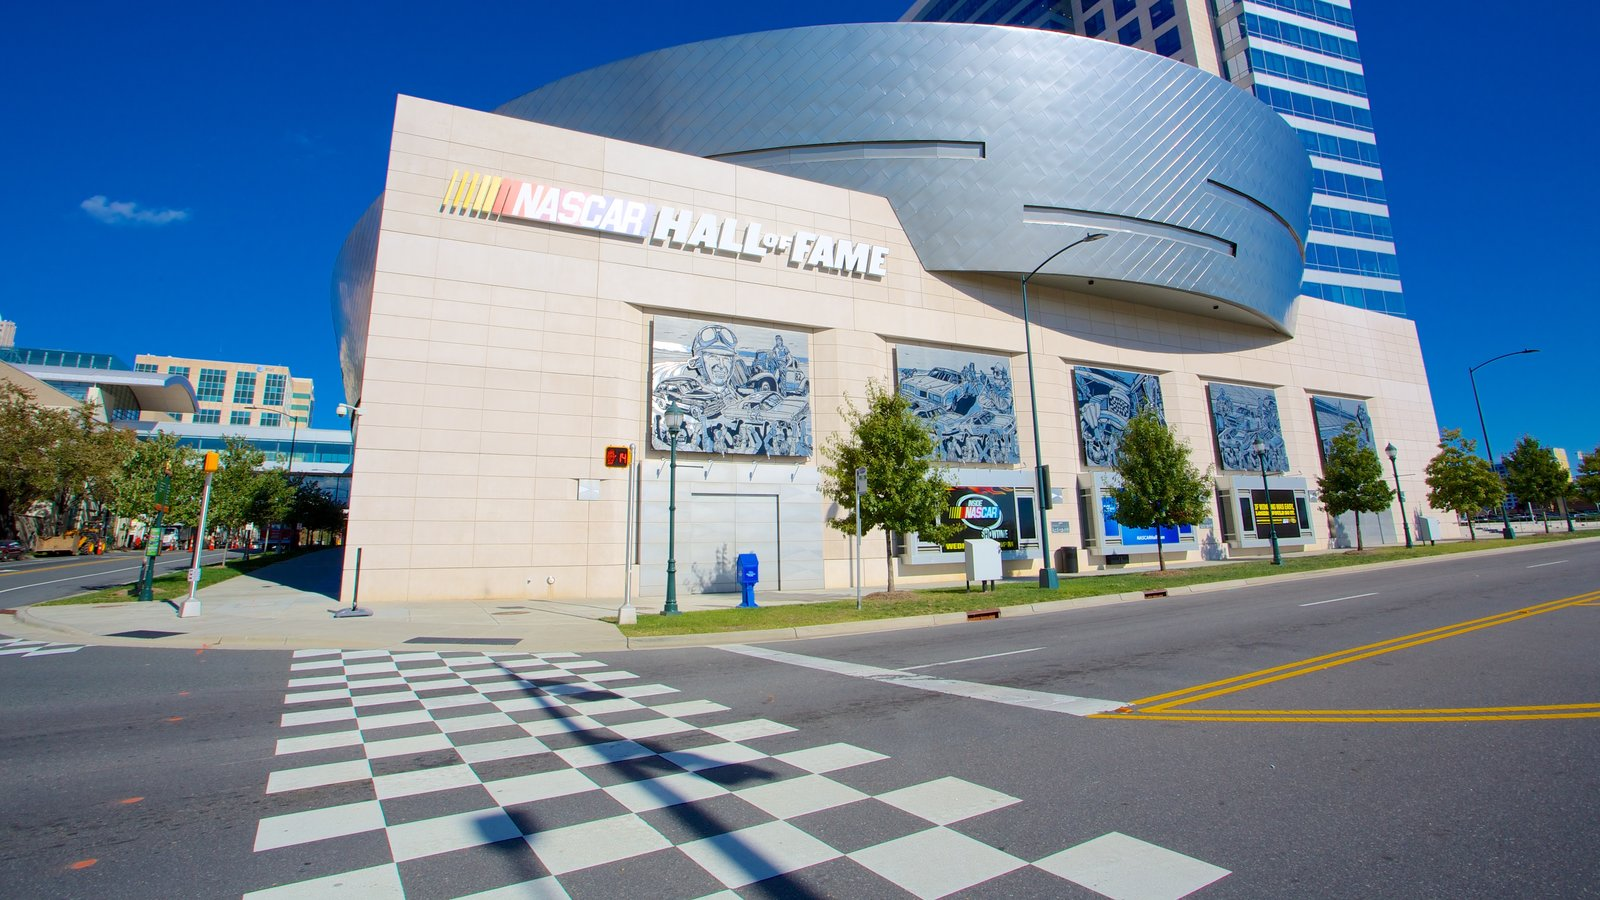 NASCAR Hall of Fame featuring a city and street scenes